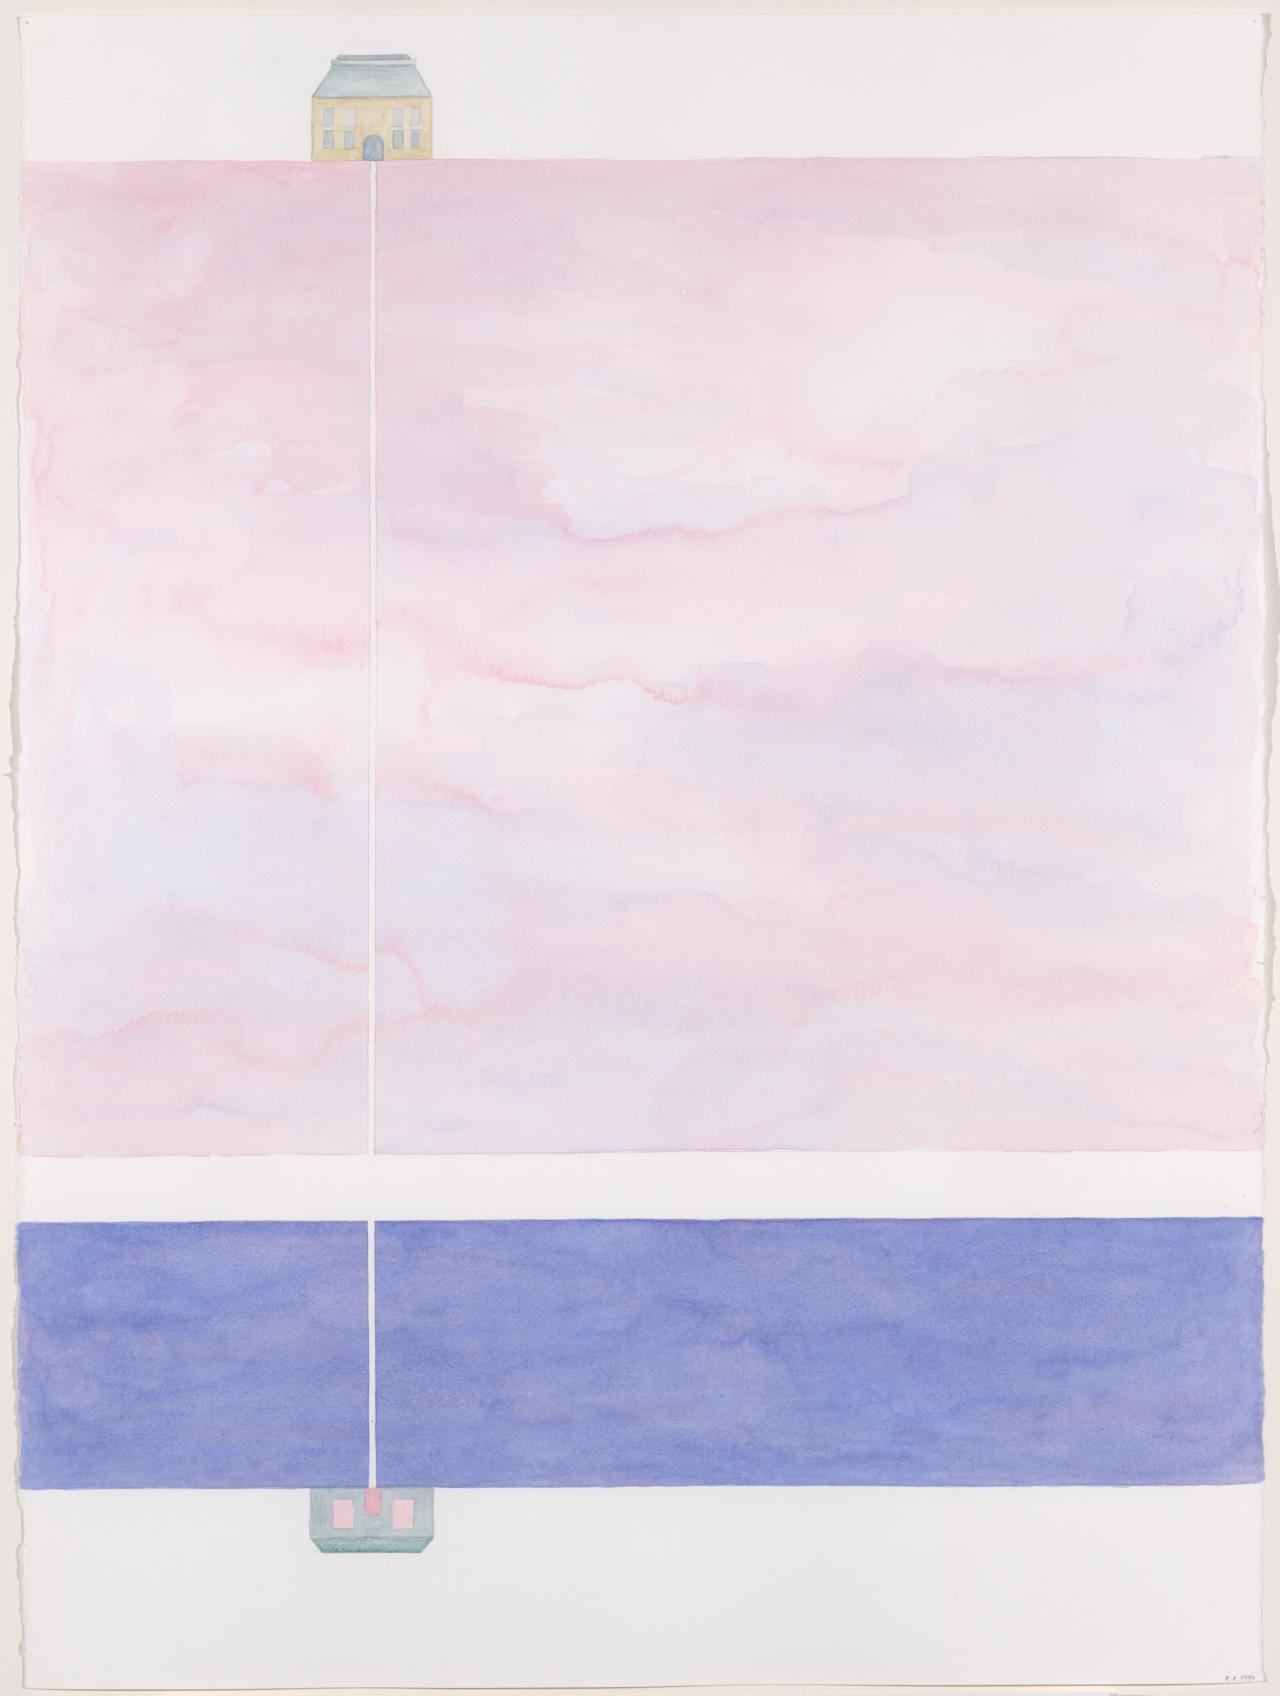 Straight line across two spaces - pink Seine and blue sky